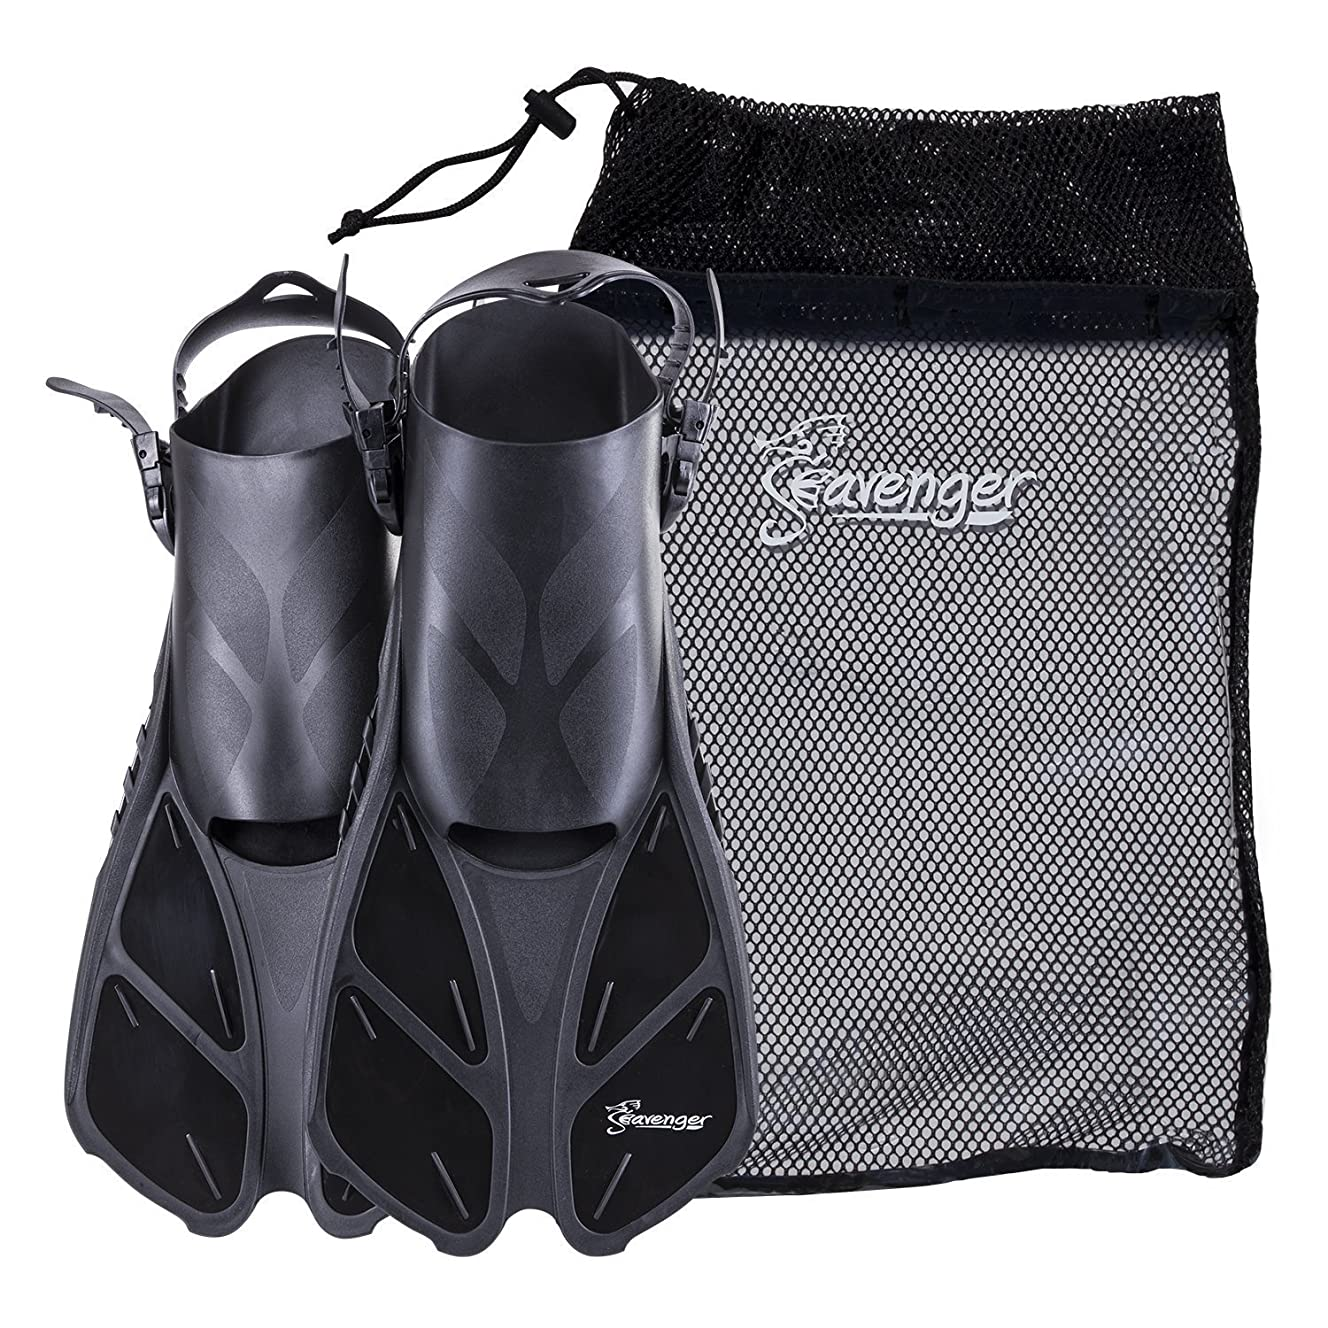 Seavenger Torpedo Swim Fins | Travel Size | Snorkeling Flippers with Mesh Bag for Women, Men and Kids